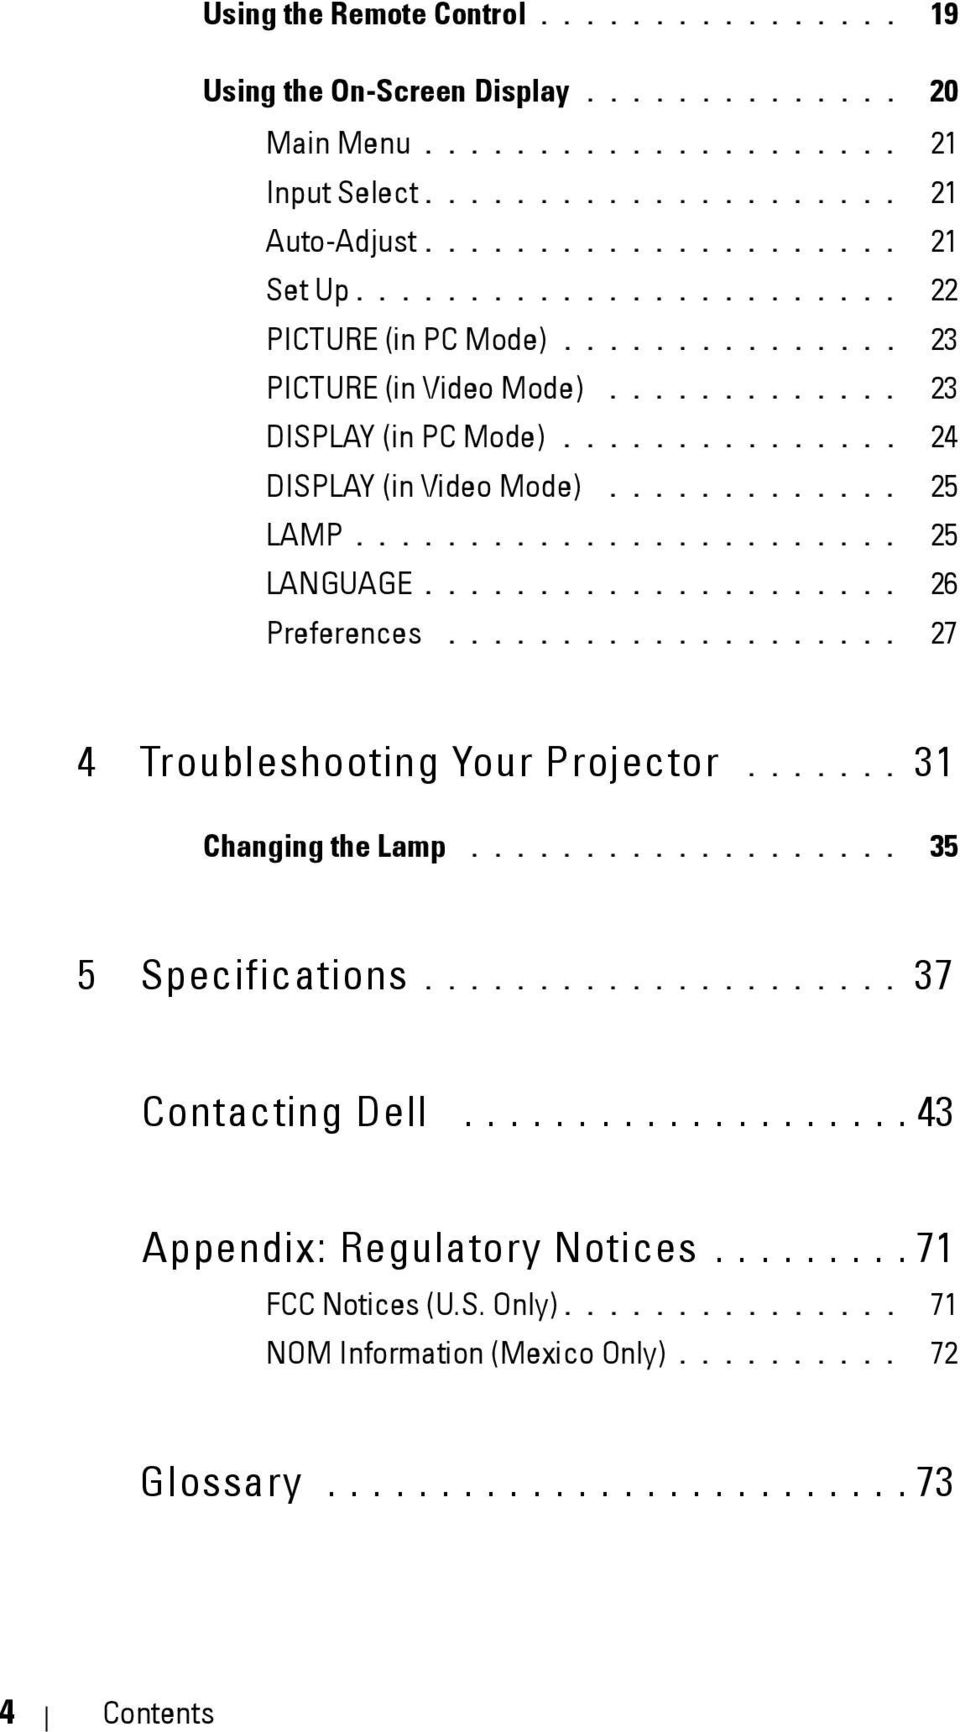 ....................... 25 LANGUAGE..................... 26 Preferences.................... 27 4 Troubleshooting Your Projector....... 31 Changing the Lamp................... 35 5 Specifications.